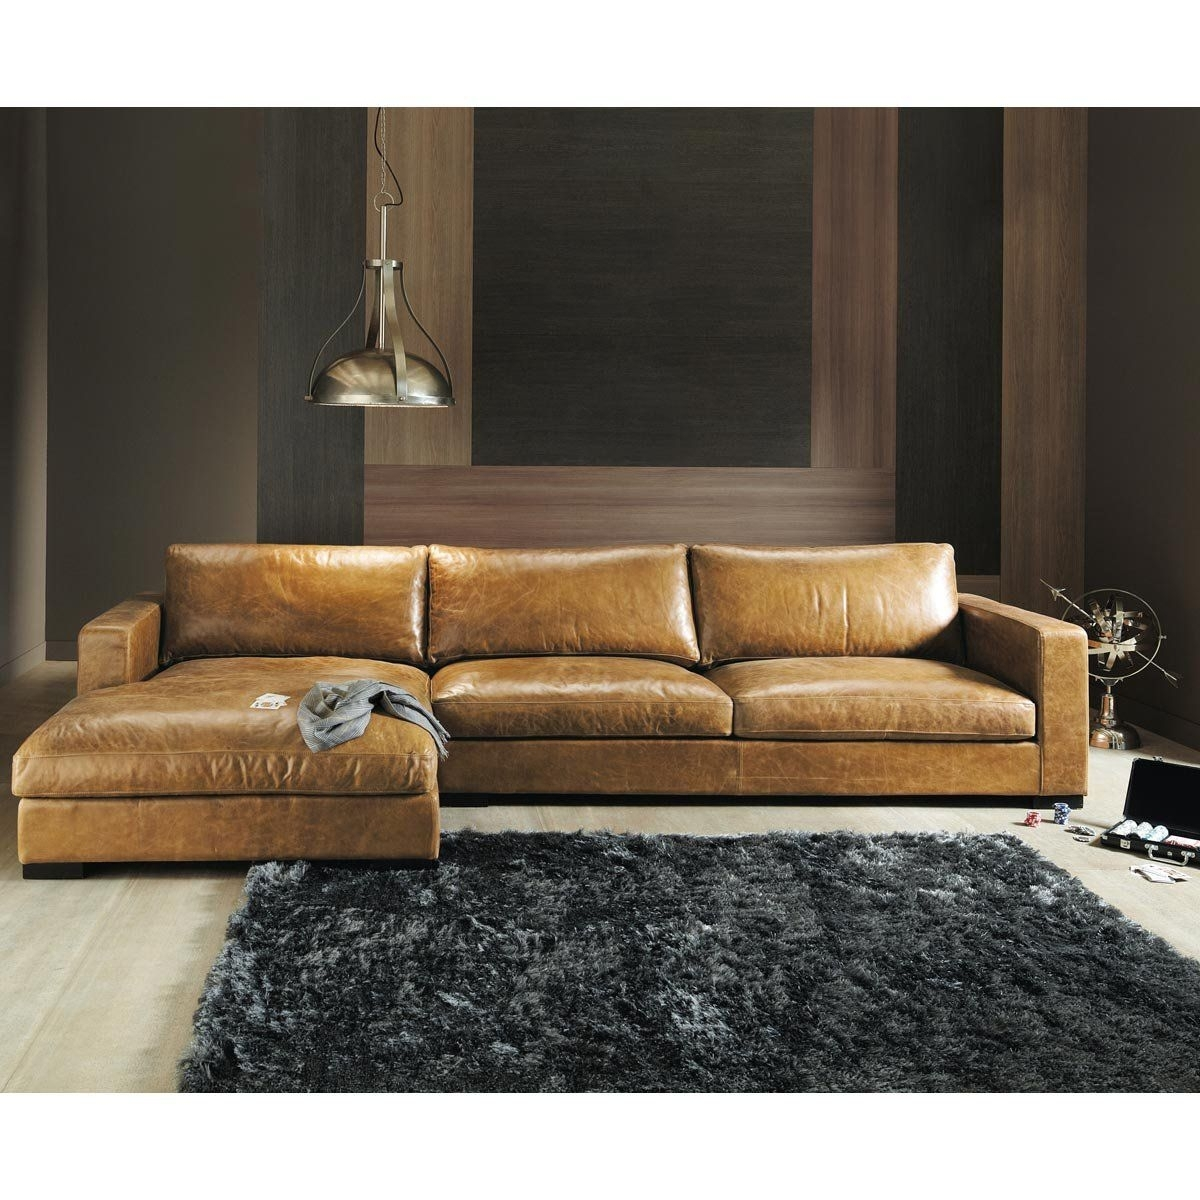 5 Seater Vintage Leather Corner Sofa, Camel | Sofa Seats, Leather With Regard To Camel Colored Sectional Sofas (Image 1 of 10)